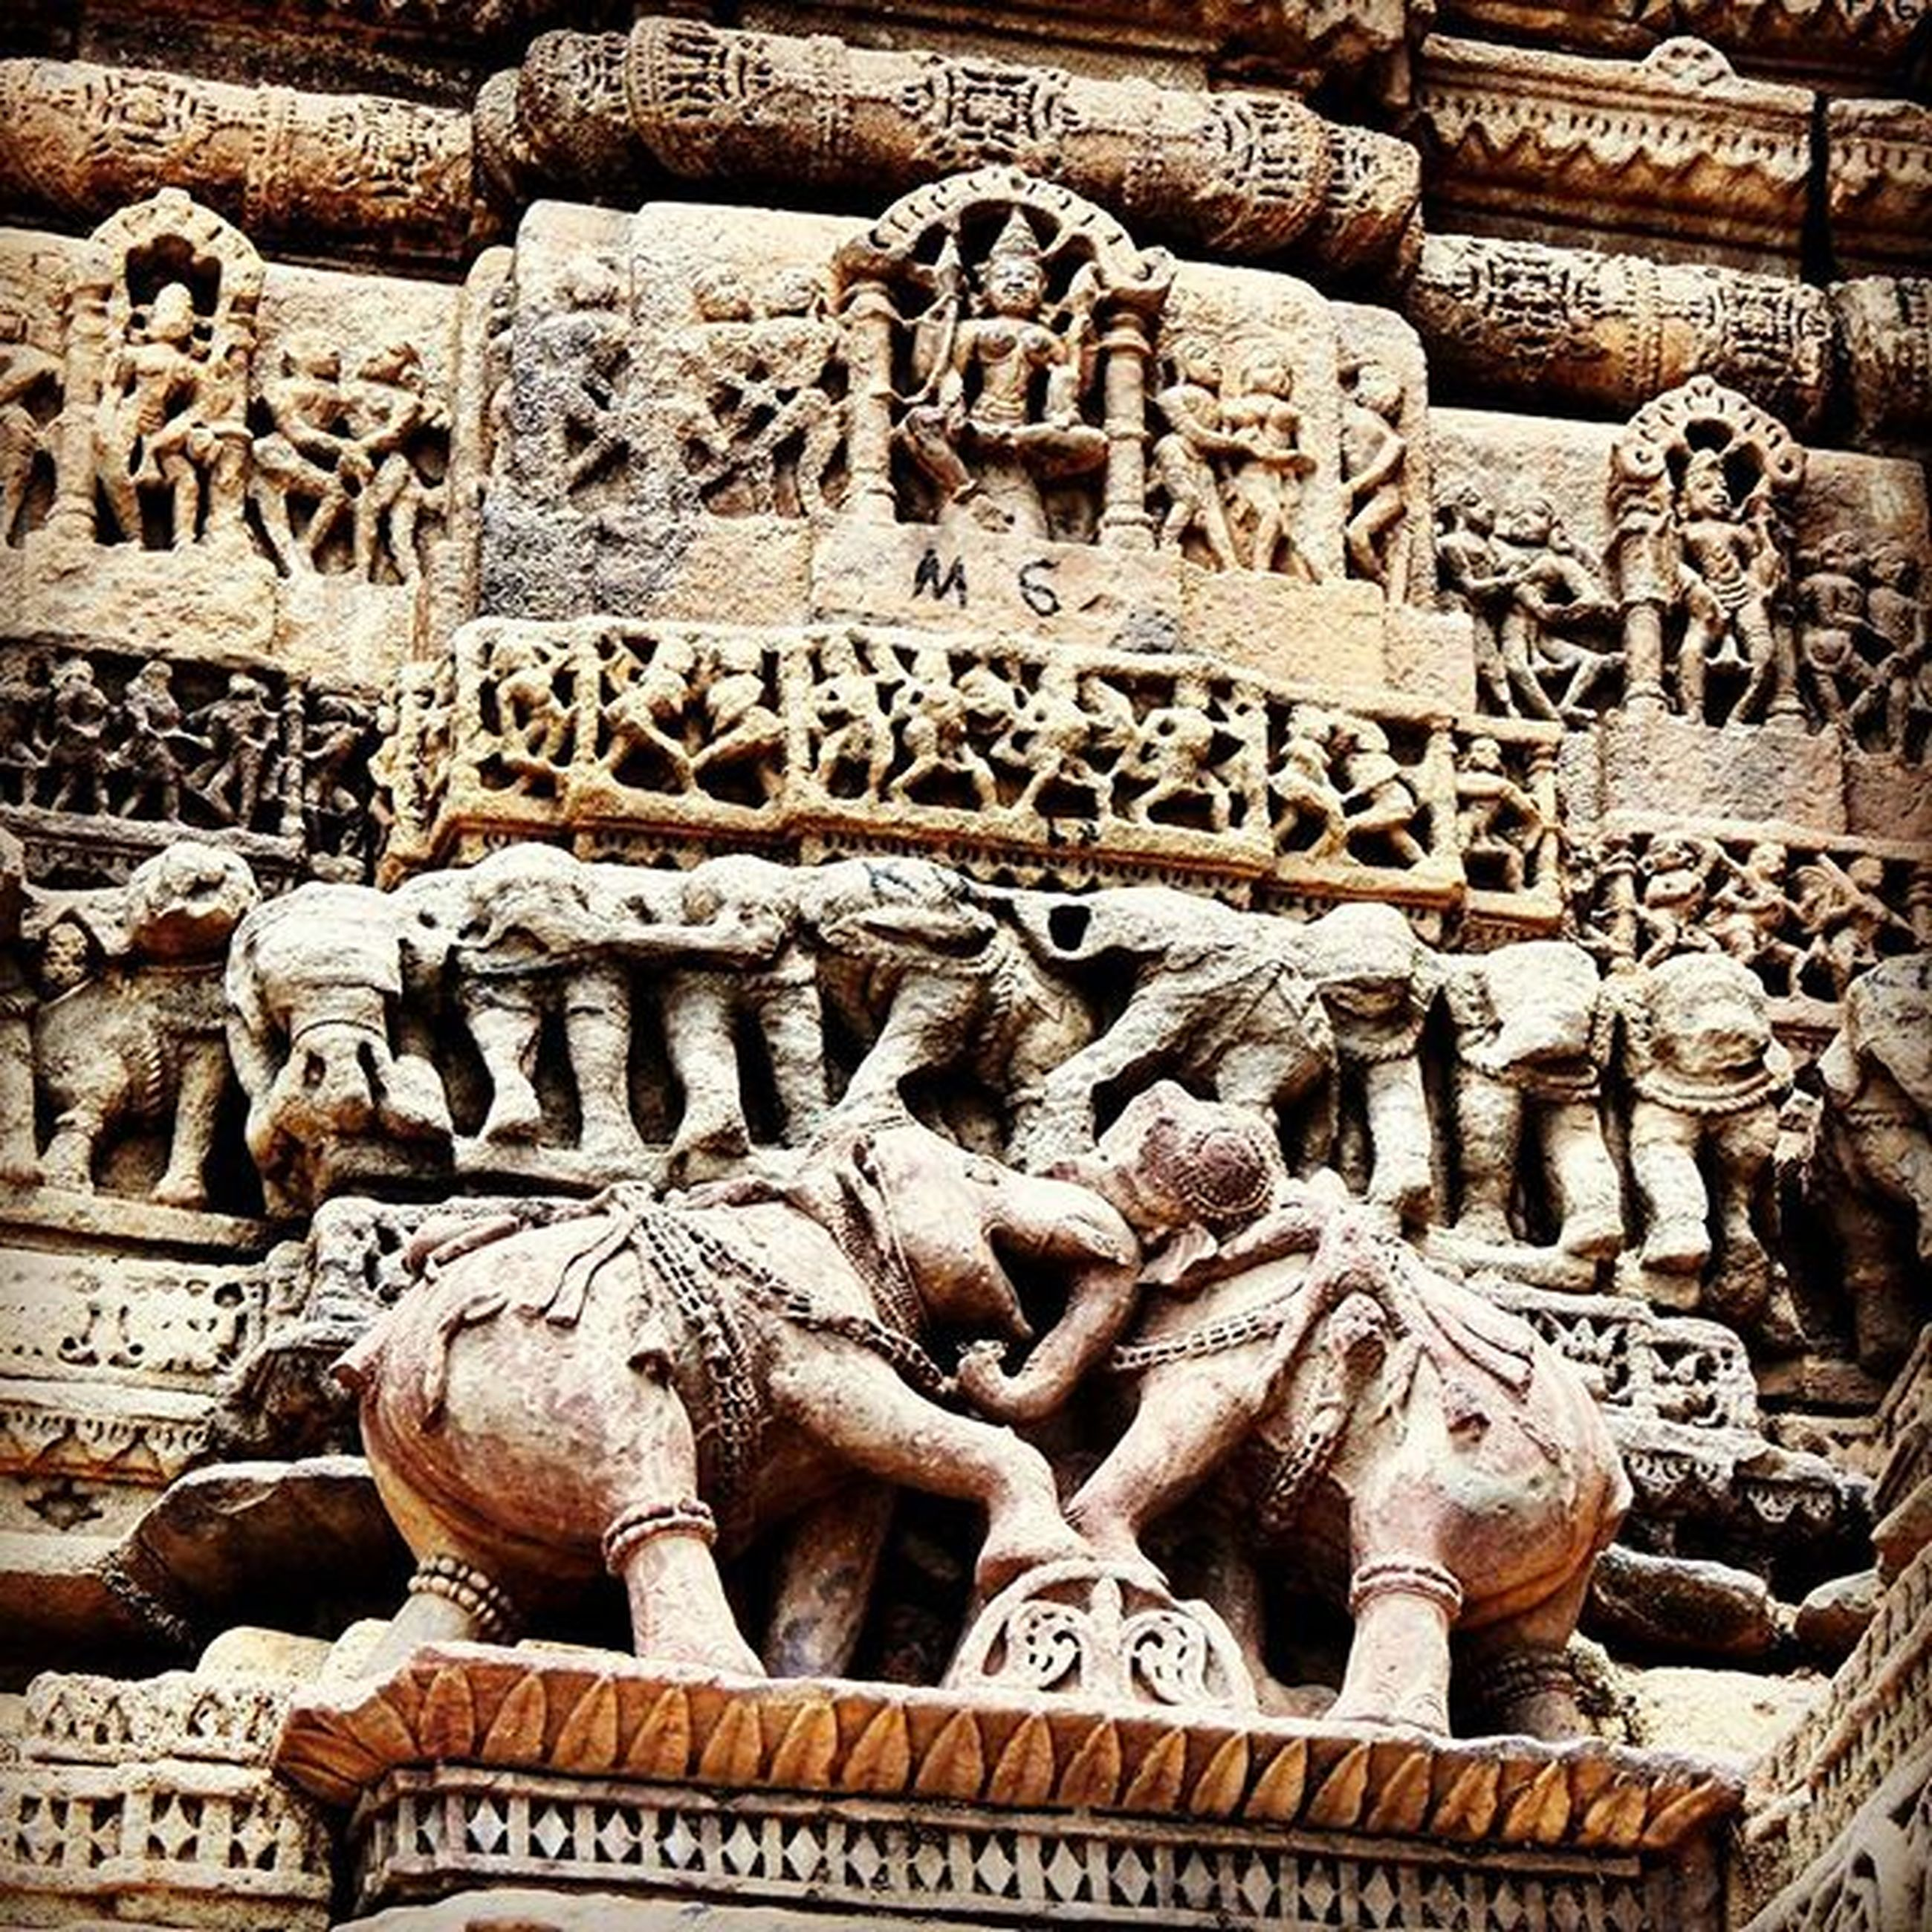 art and craft, art, human representation, creativity, statue, carving - craft product, sculpture, architecture, history, built structure, text, famous place, building exterior, ancient, travel destinations, carving, the past, religion, non-western script